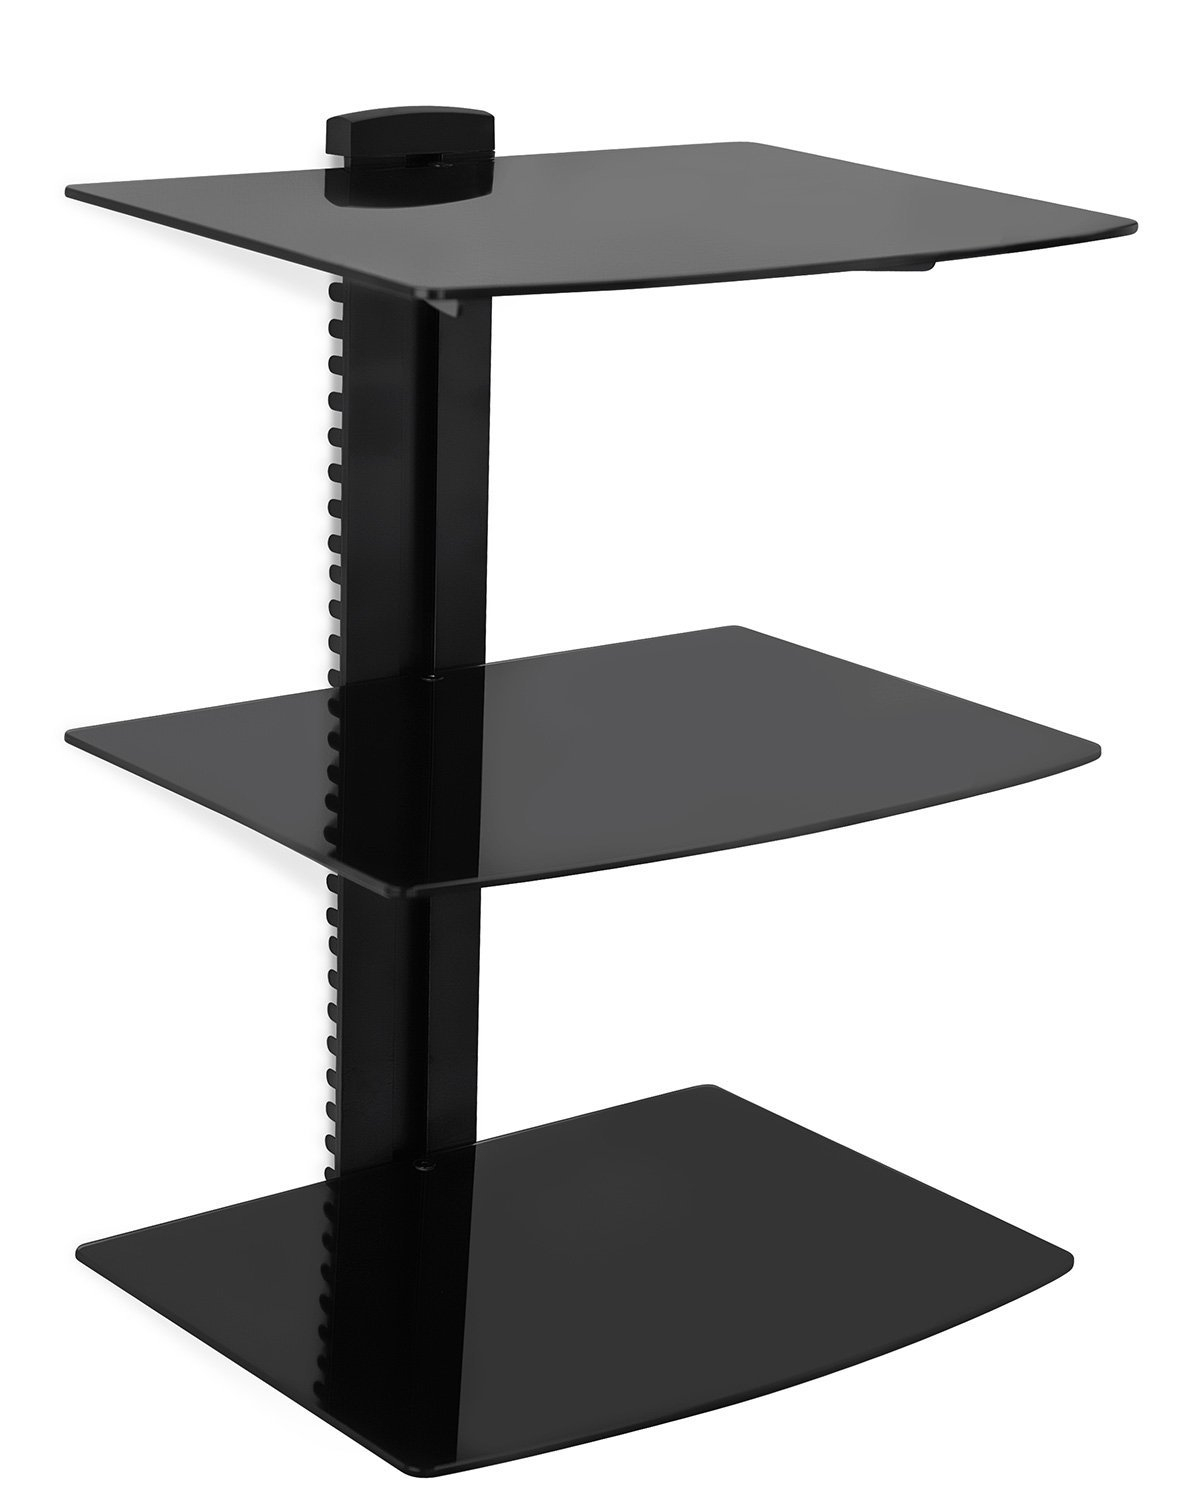 Amazon Mount It Wall Mounted Av Component Shelving System Throughout Wall Mounted Black Glass Shelves (View 15 of 15)